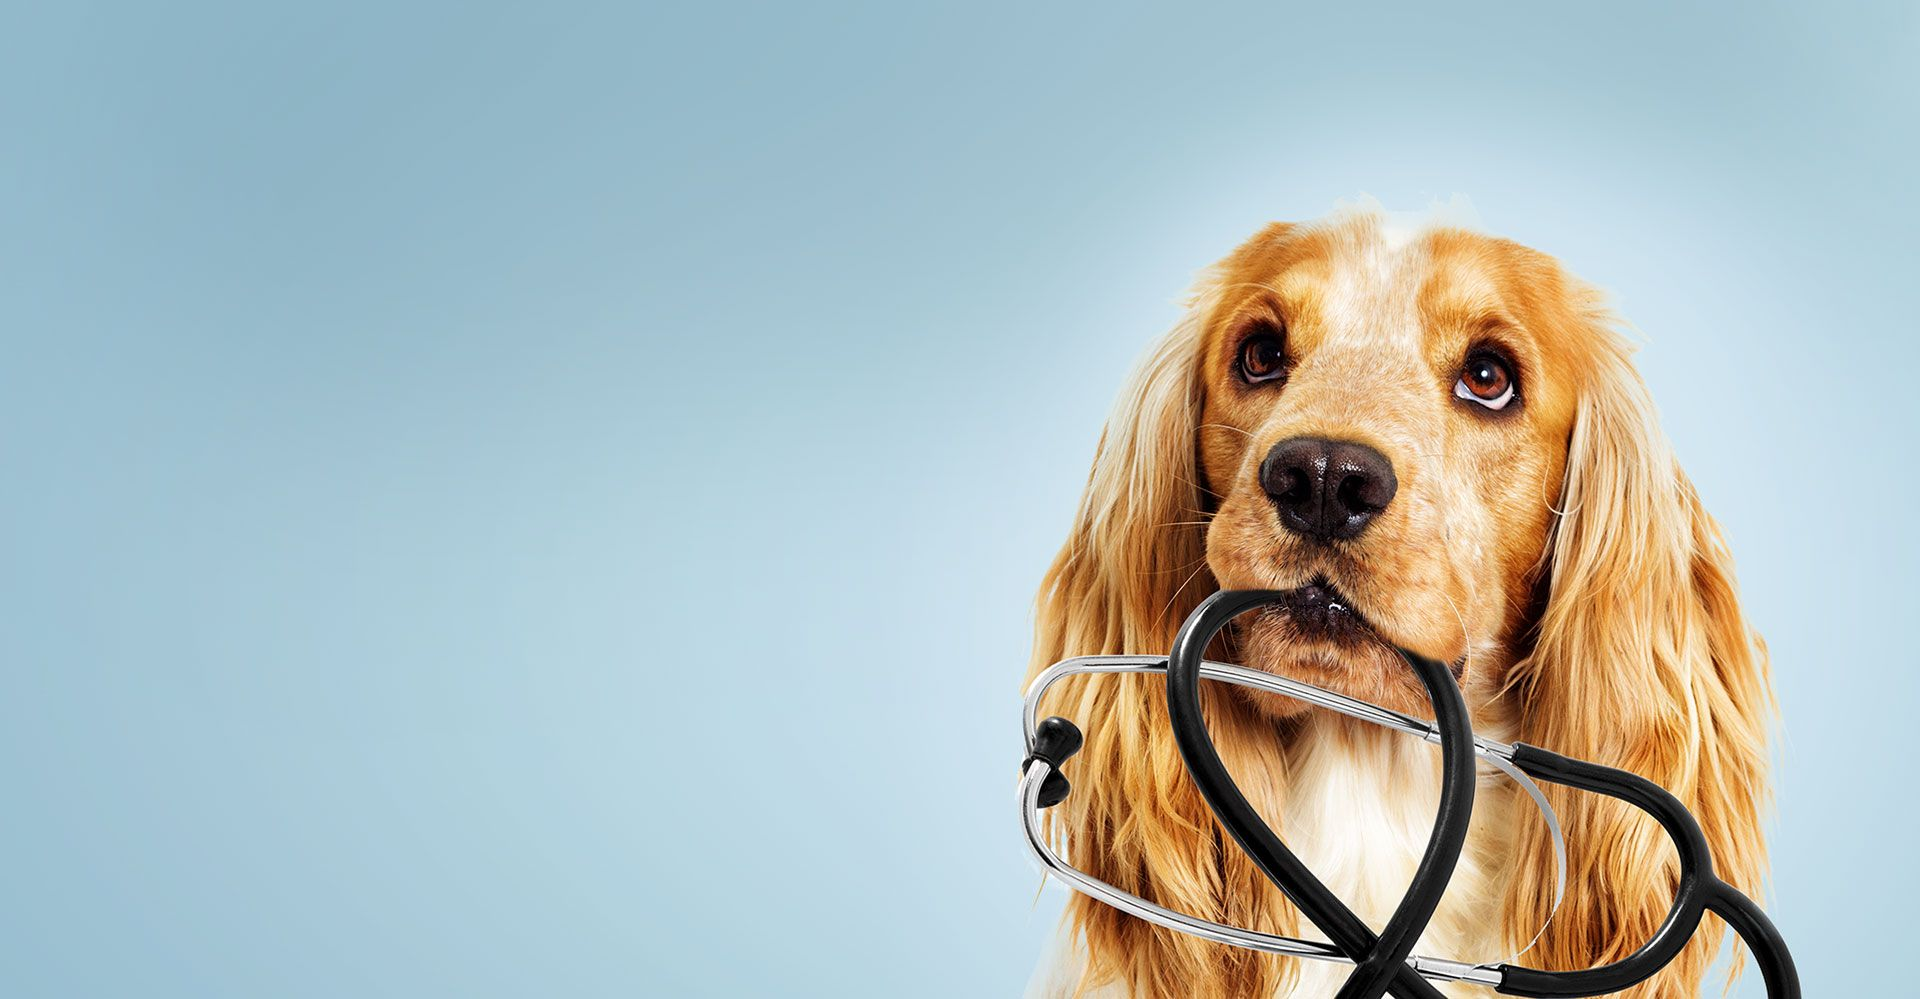 dog with a stethoscope